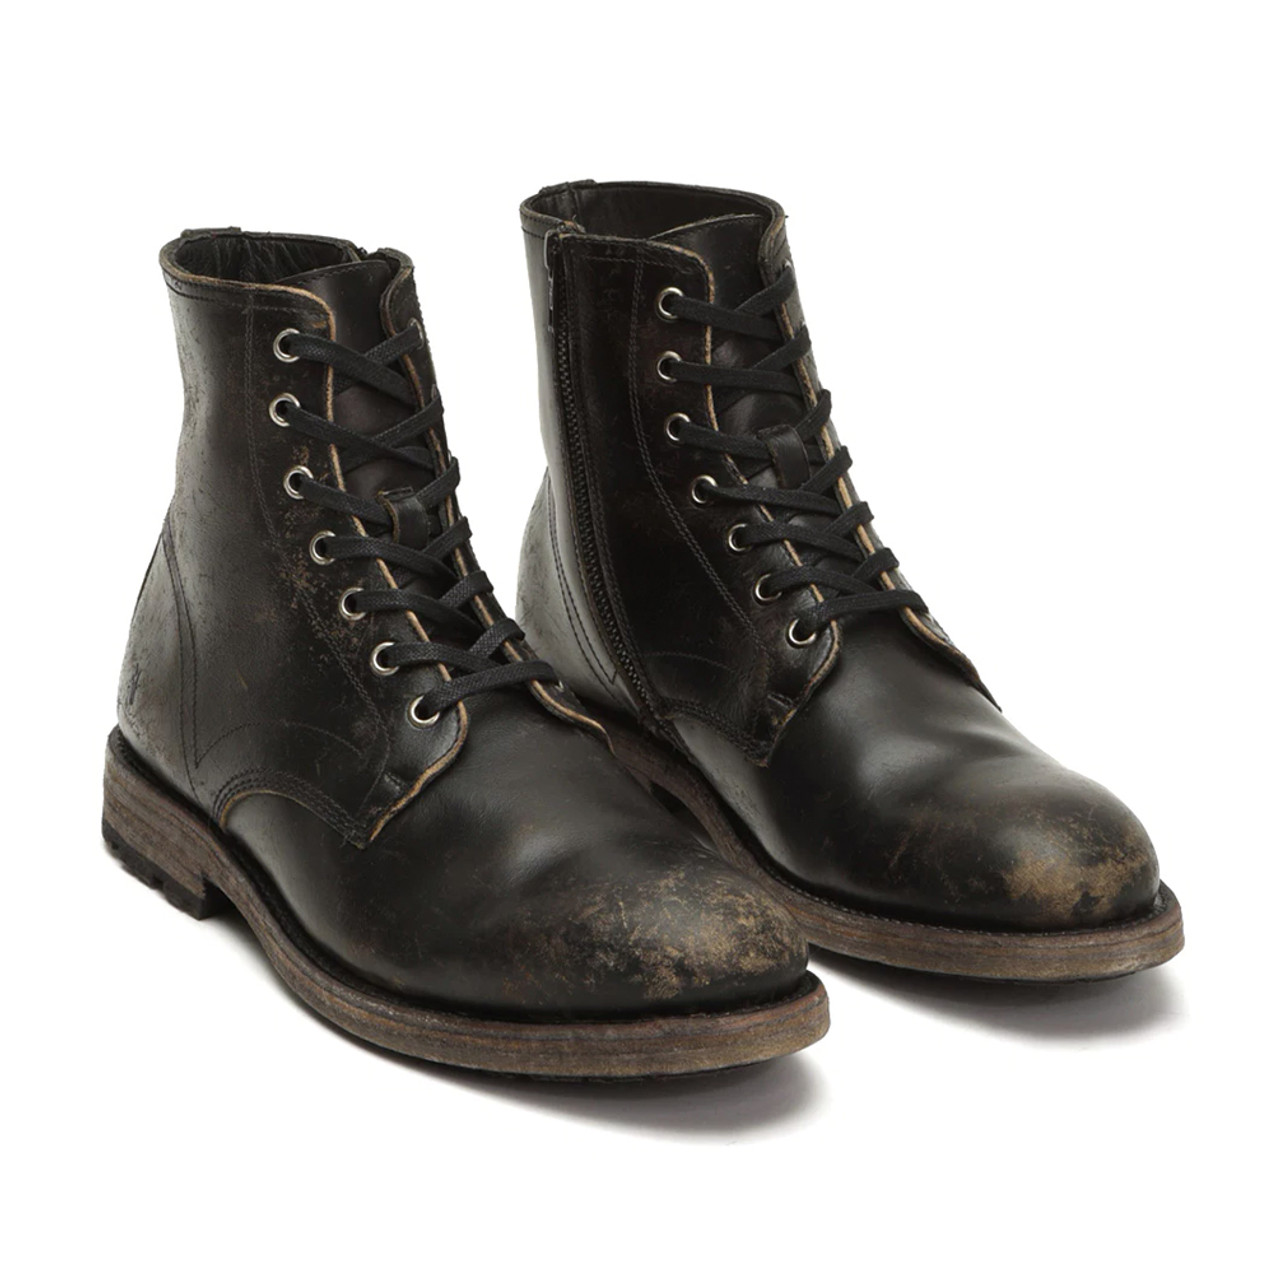 FRYE Men's Bowery Lace Up Boot - Black